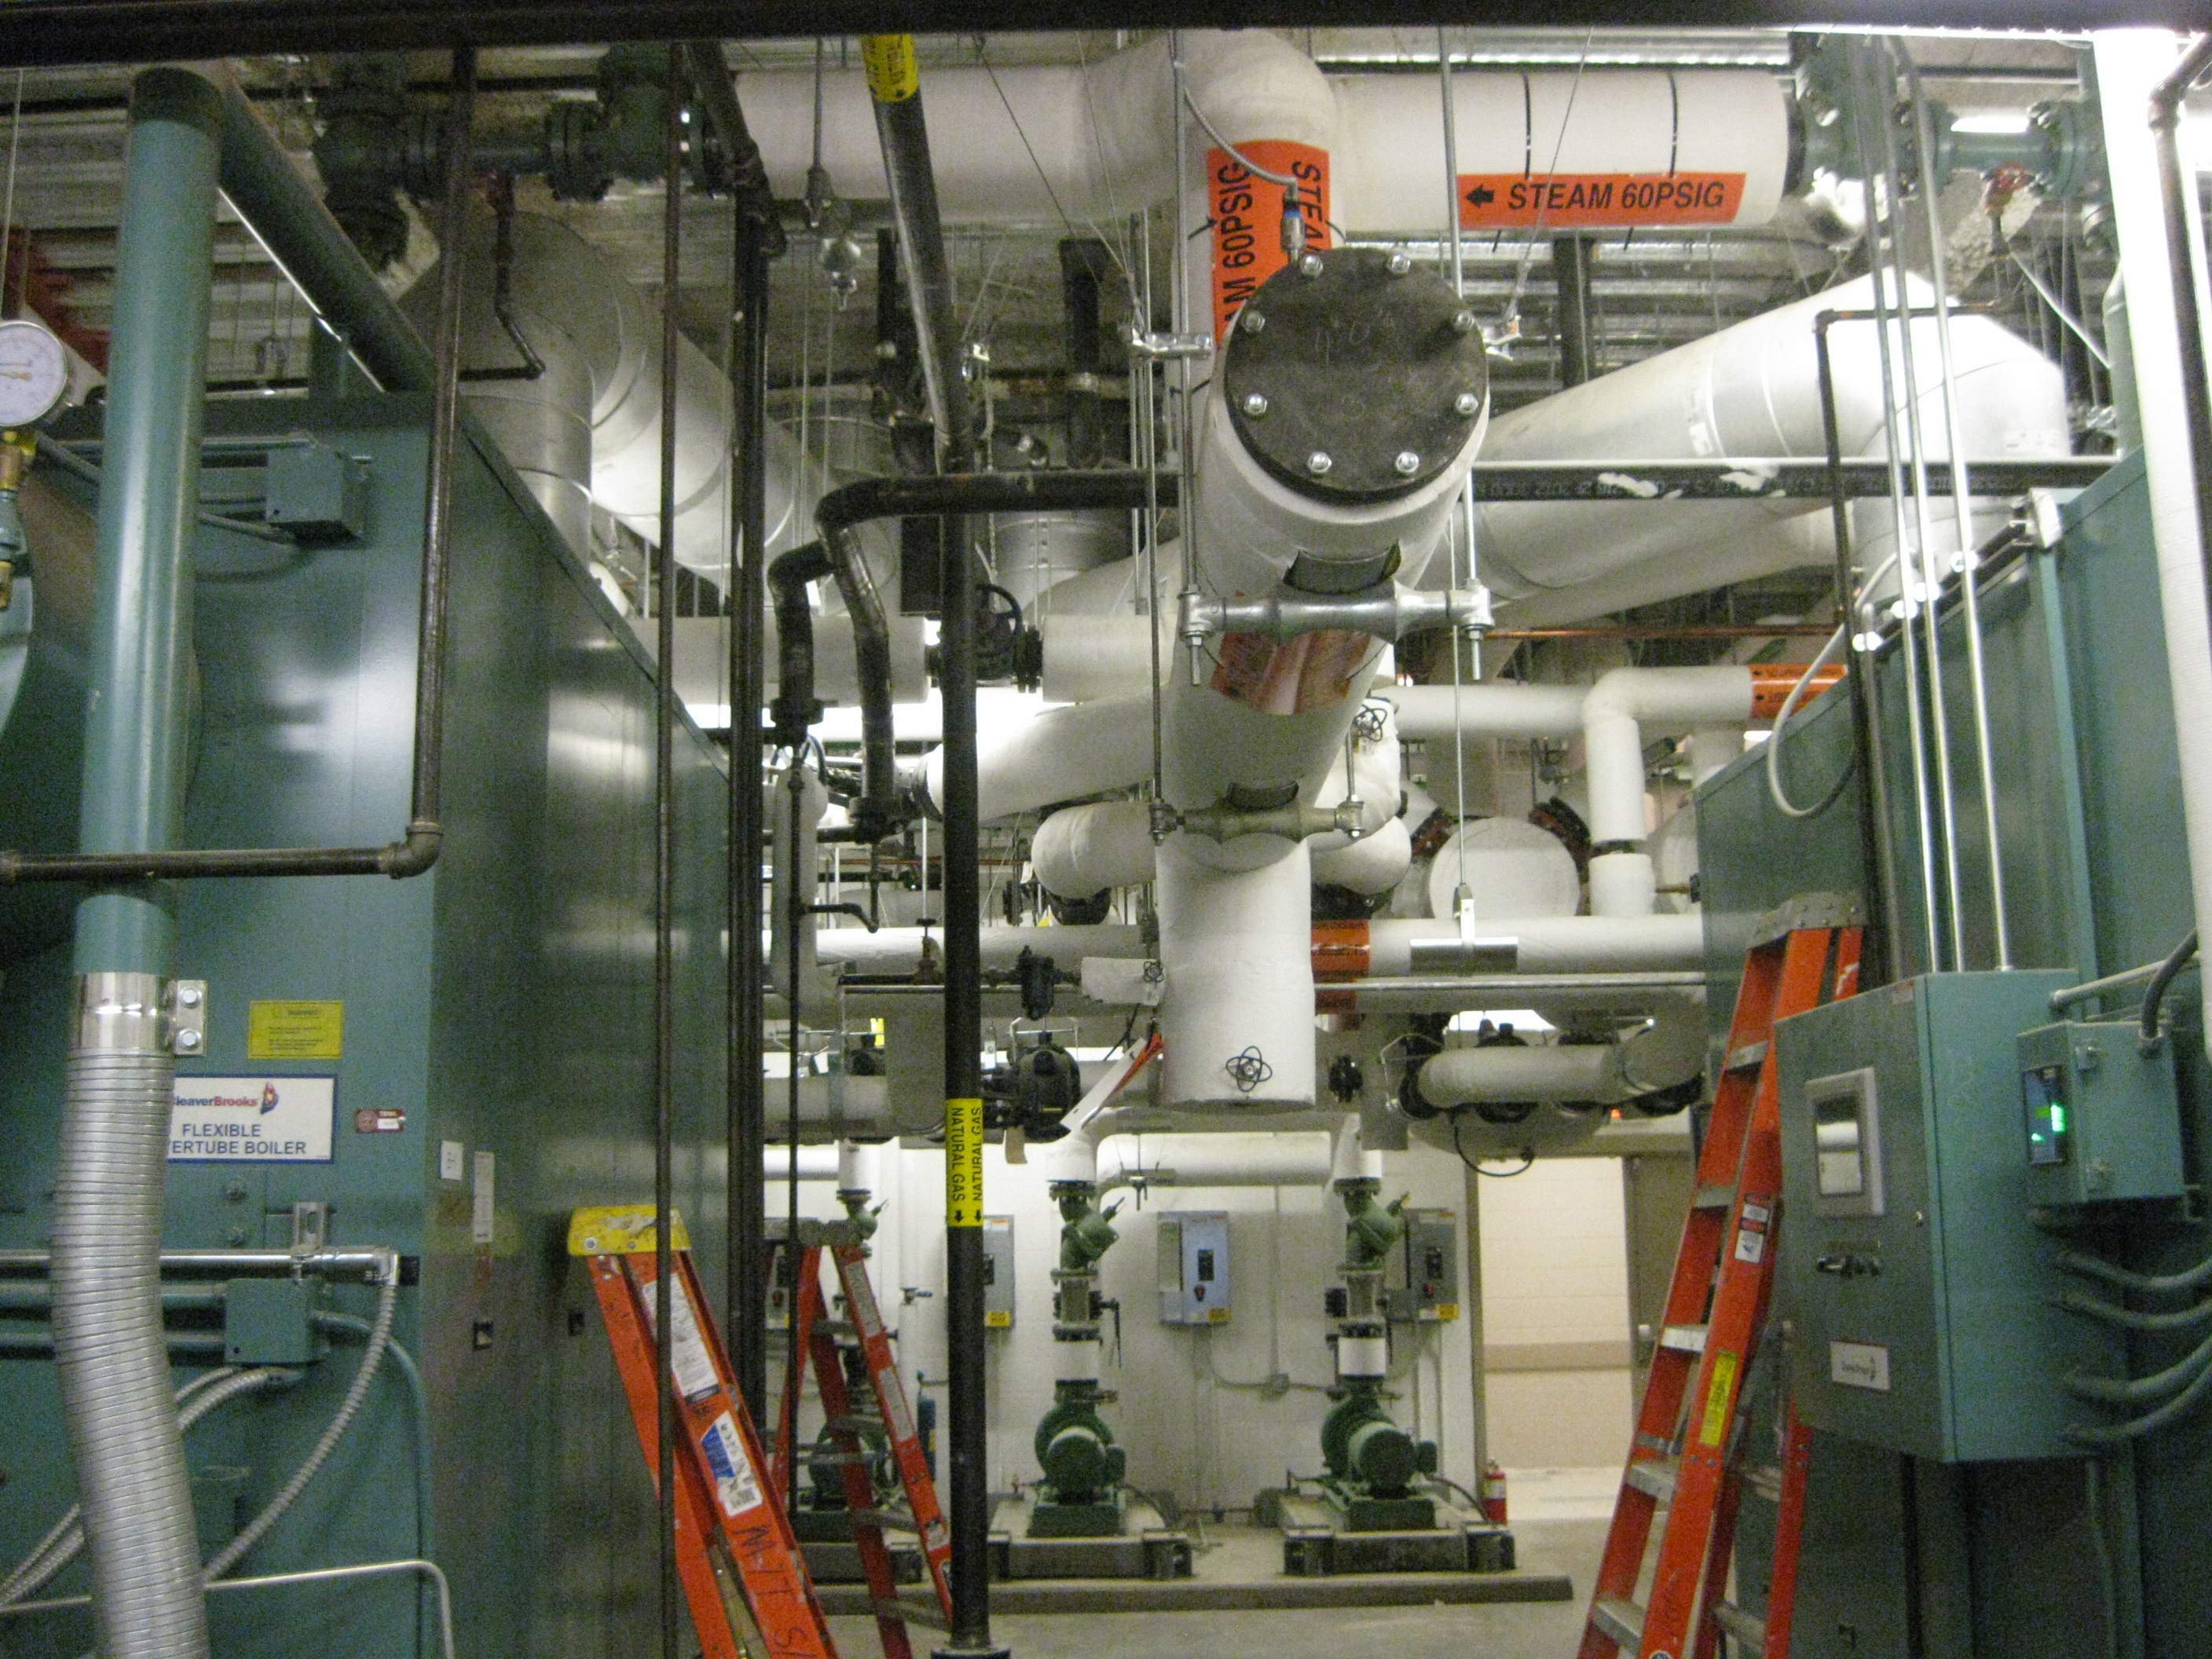 Boilers at University of Tennessee Translational Sciences Research